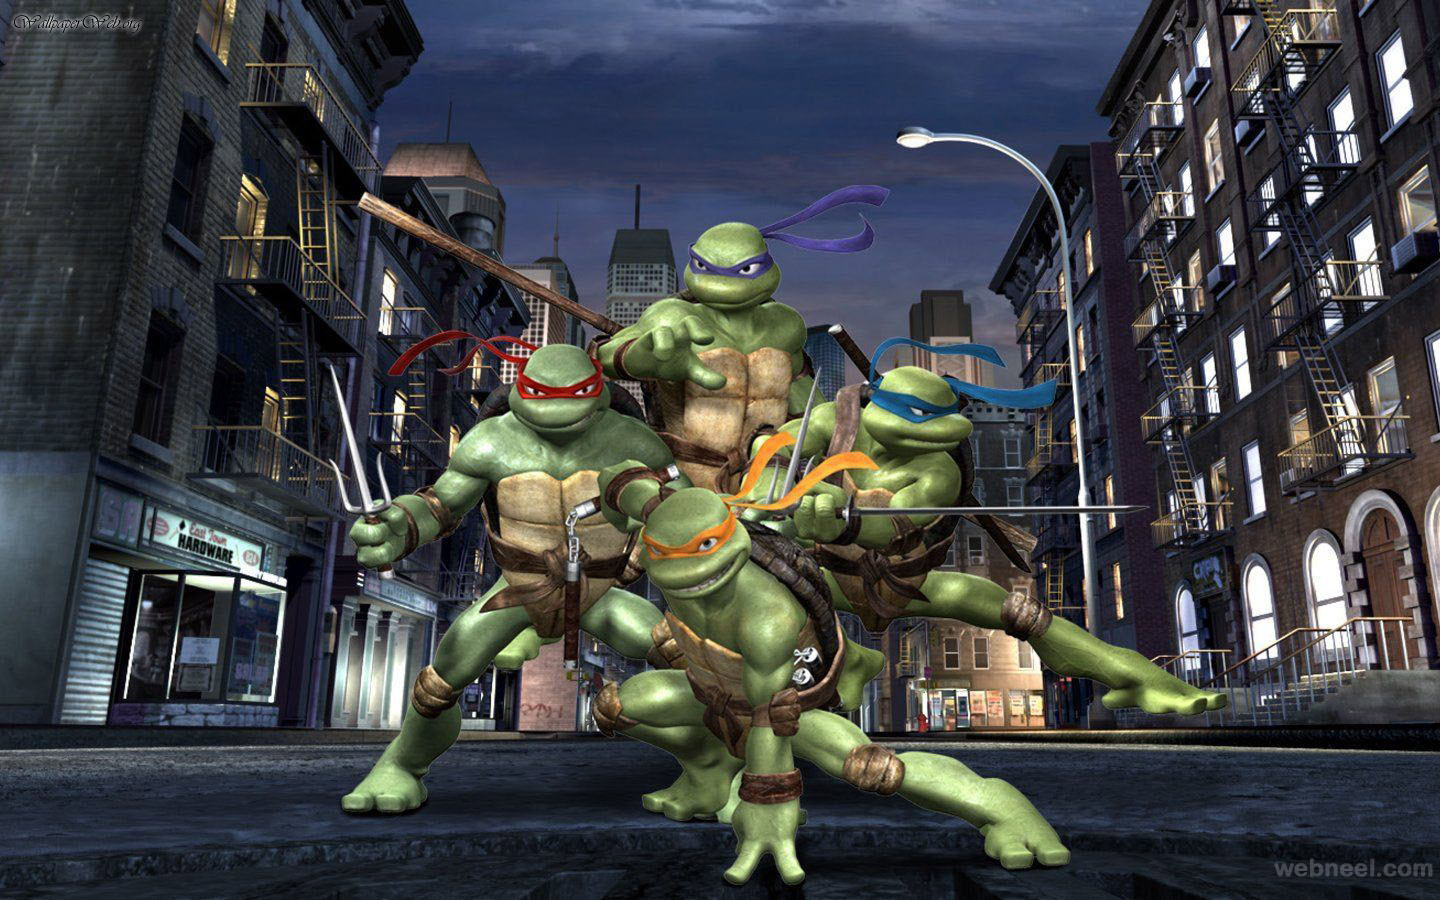 teenage mutant ninja turtles wallpaper 1 Full Image